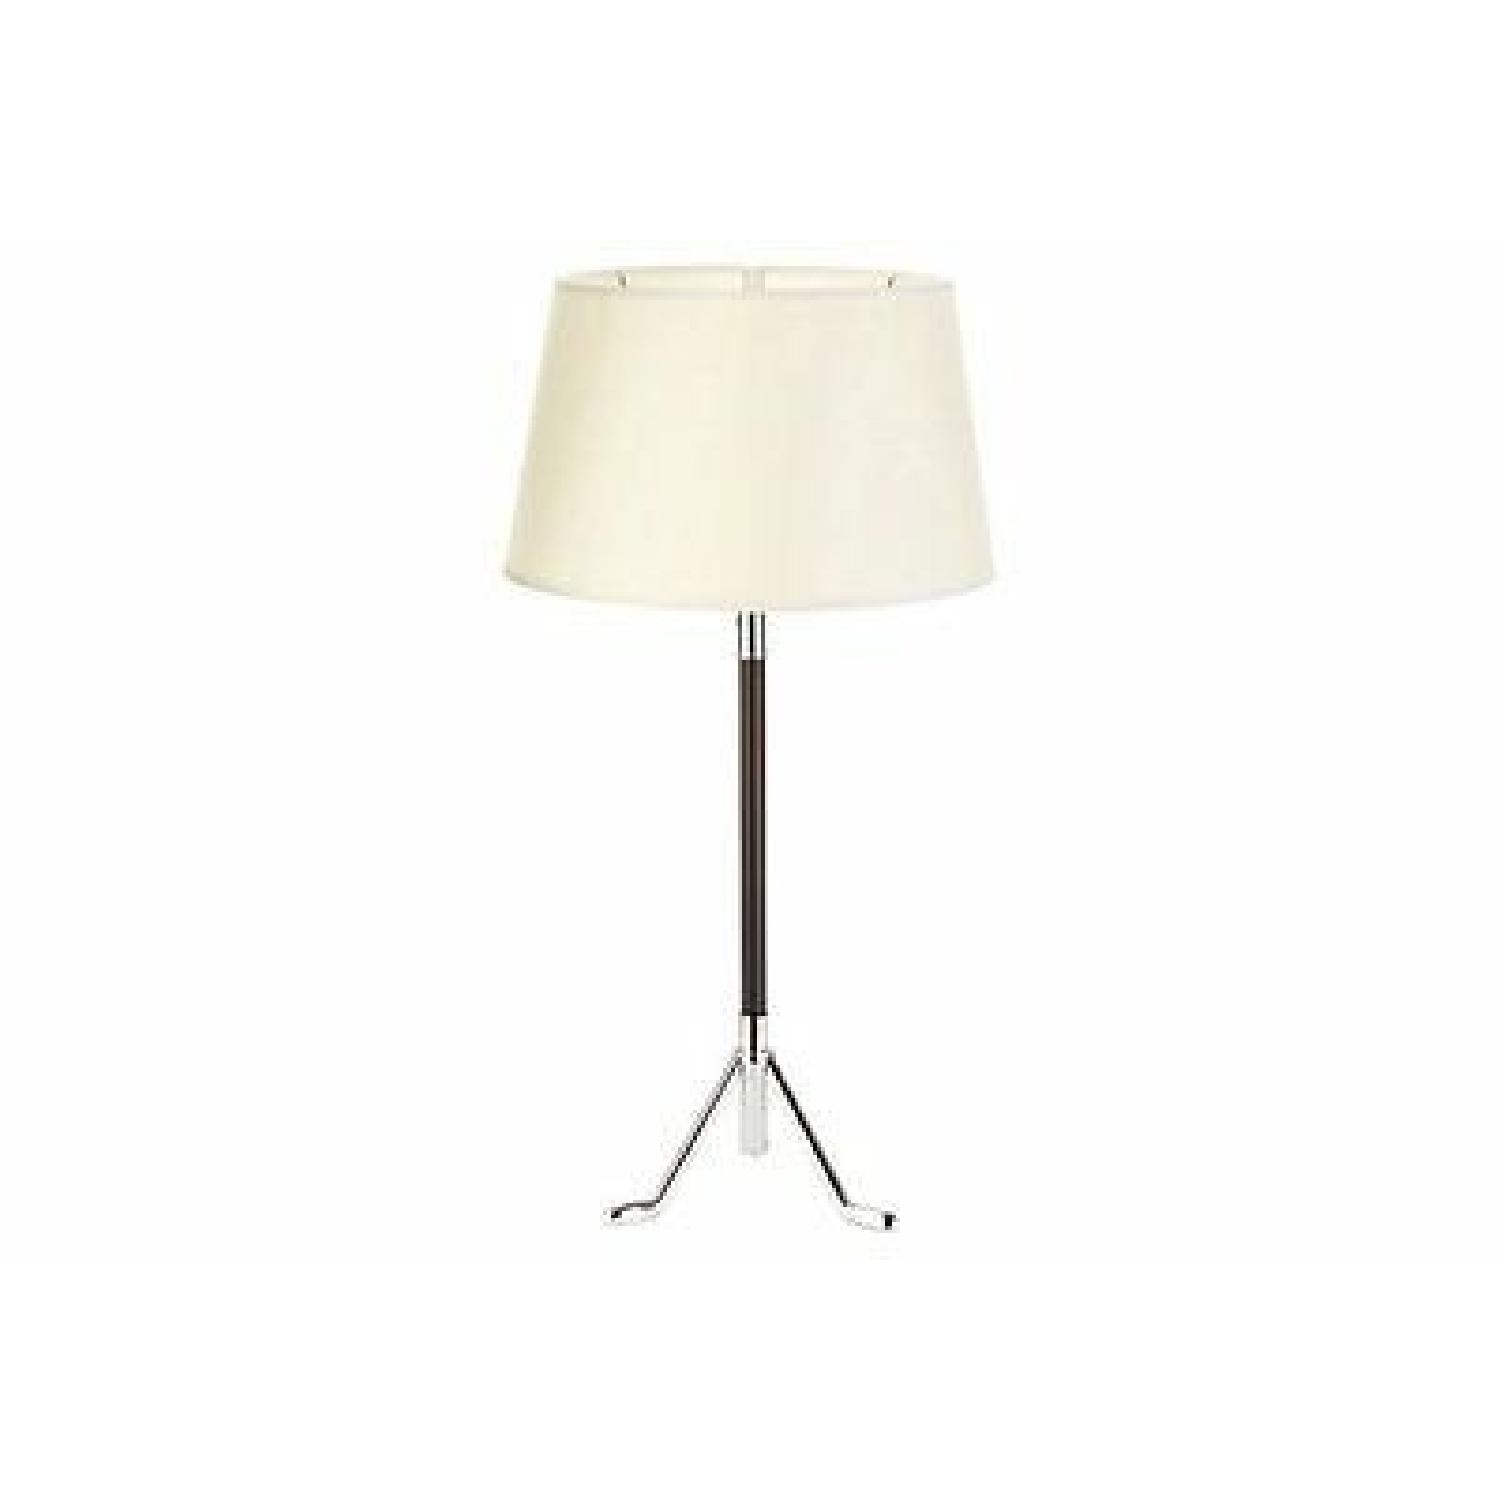 Robert Abbey Todd Table Lamps w/ White Shades - image-0